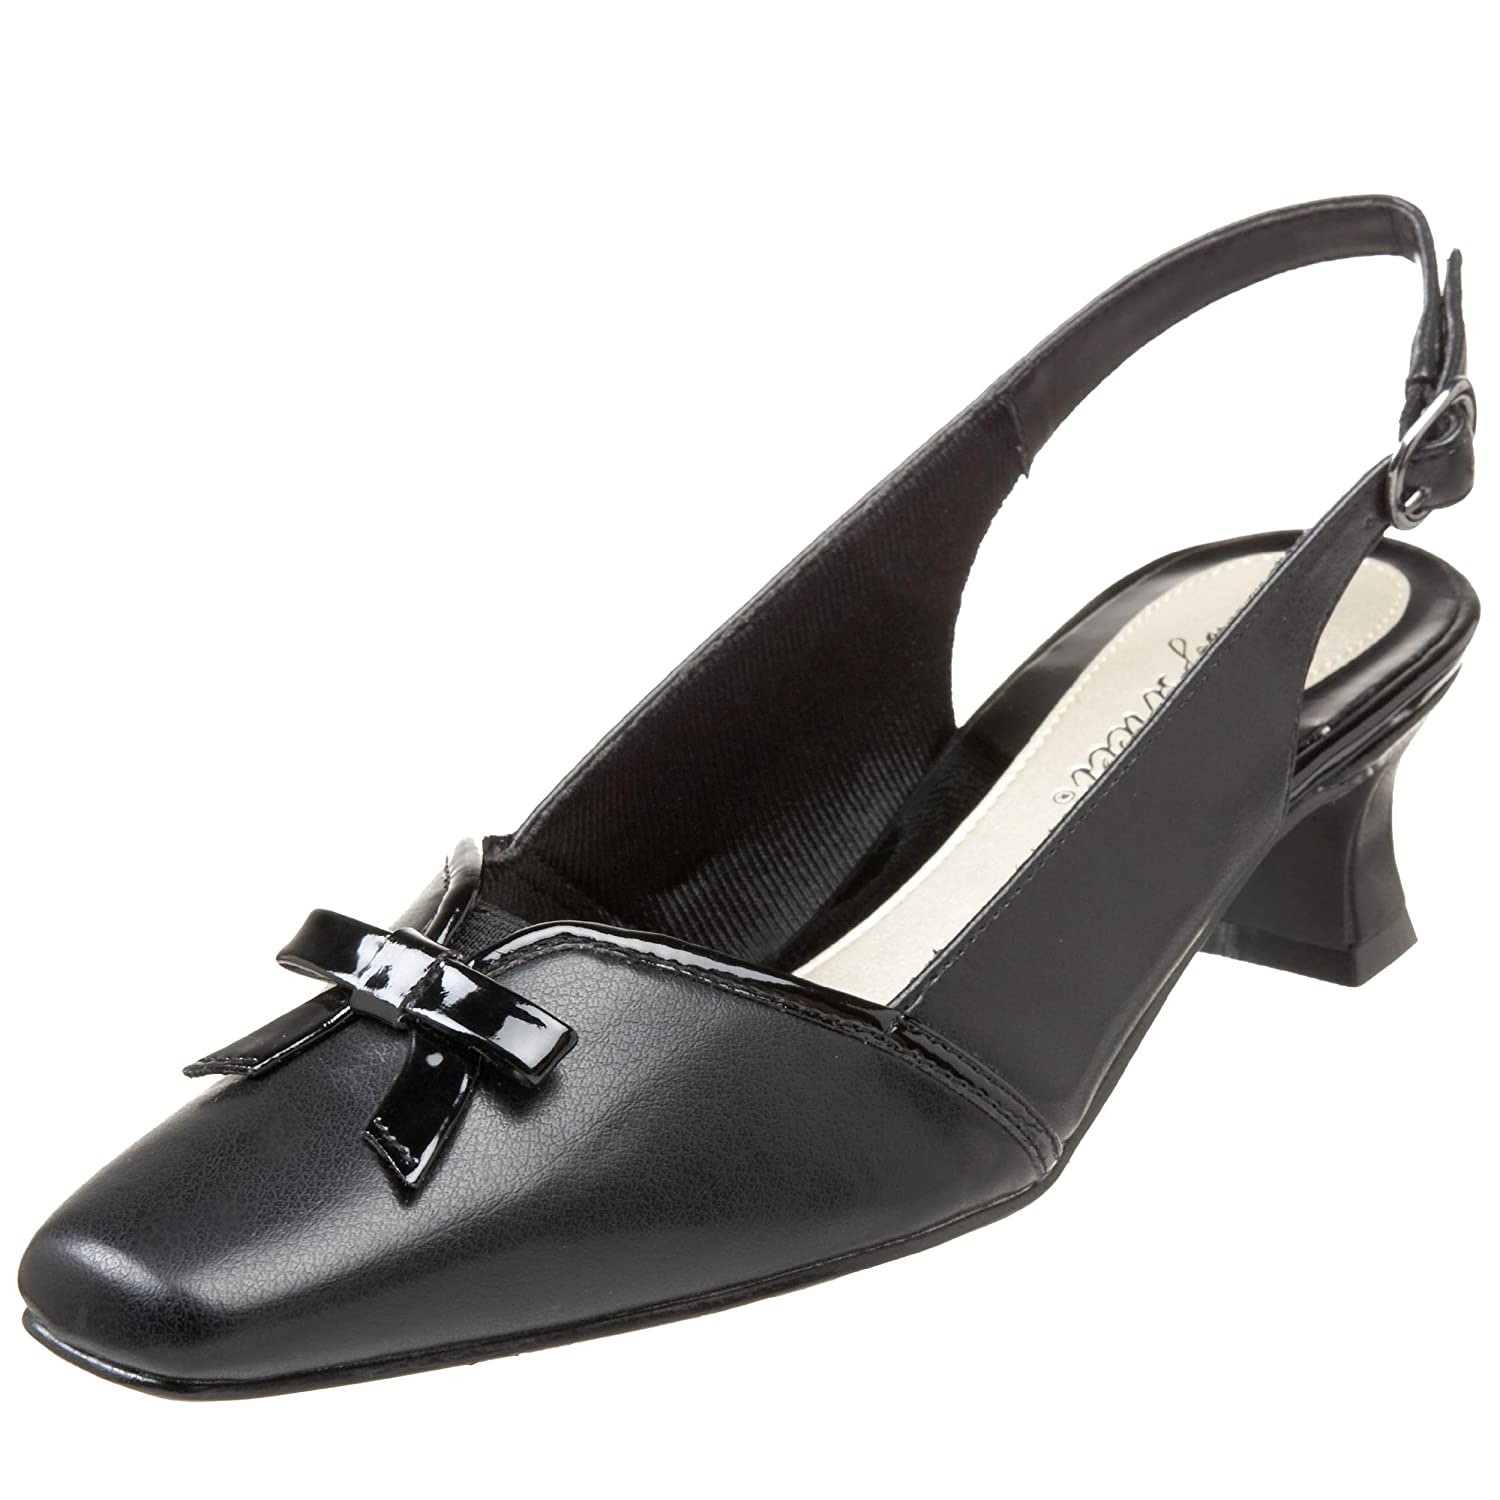 Buy WIDE shoes in 1920s, 1930s, 1940s, 1950s styles? Easy Street Womens Incredible Mid Heel Shoes  AT vintagedancer.com